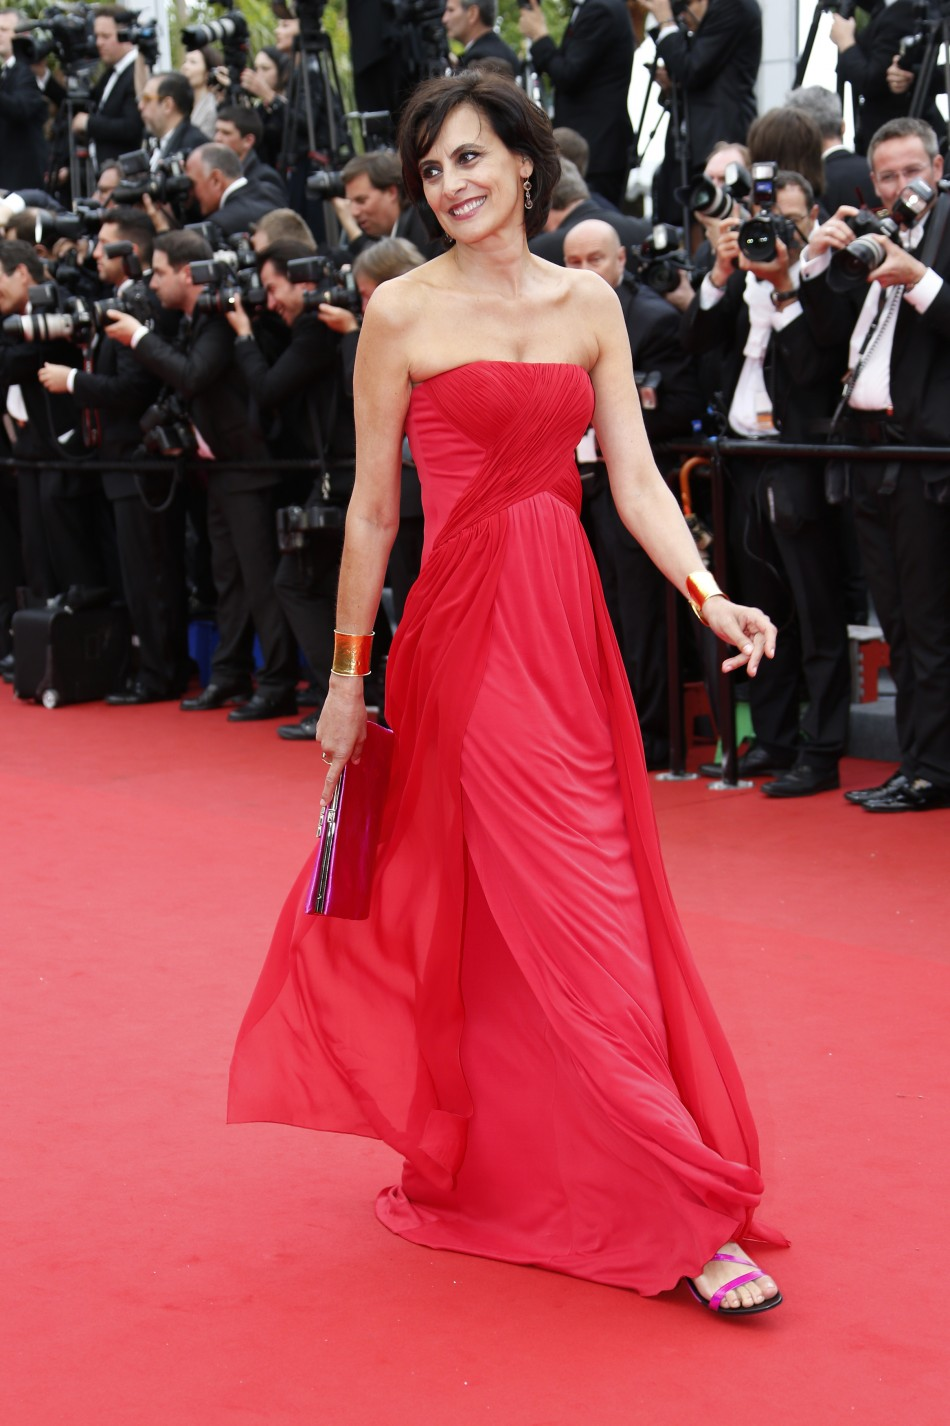 French fashion designer and former model Ines de la Fressange poses on the red carpet as she arrives for the screening of the film Jeune  Jolie Young  Beautiful in competition during the 66th Cannes Film Festival in Cannes May 16, 2013.